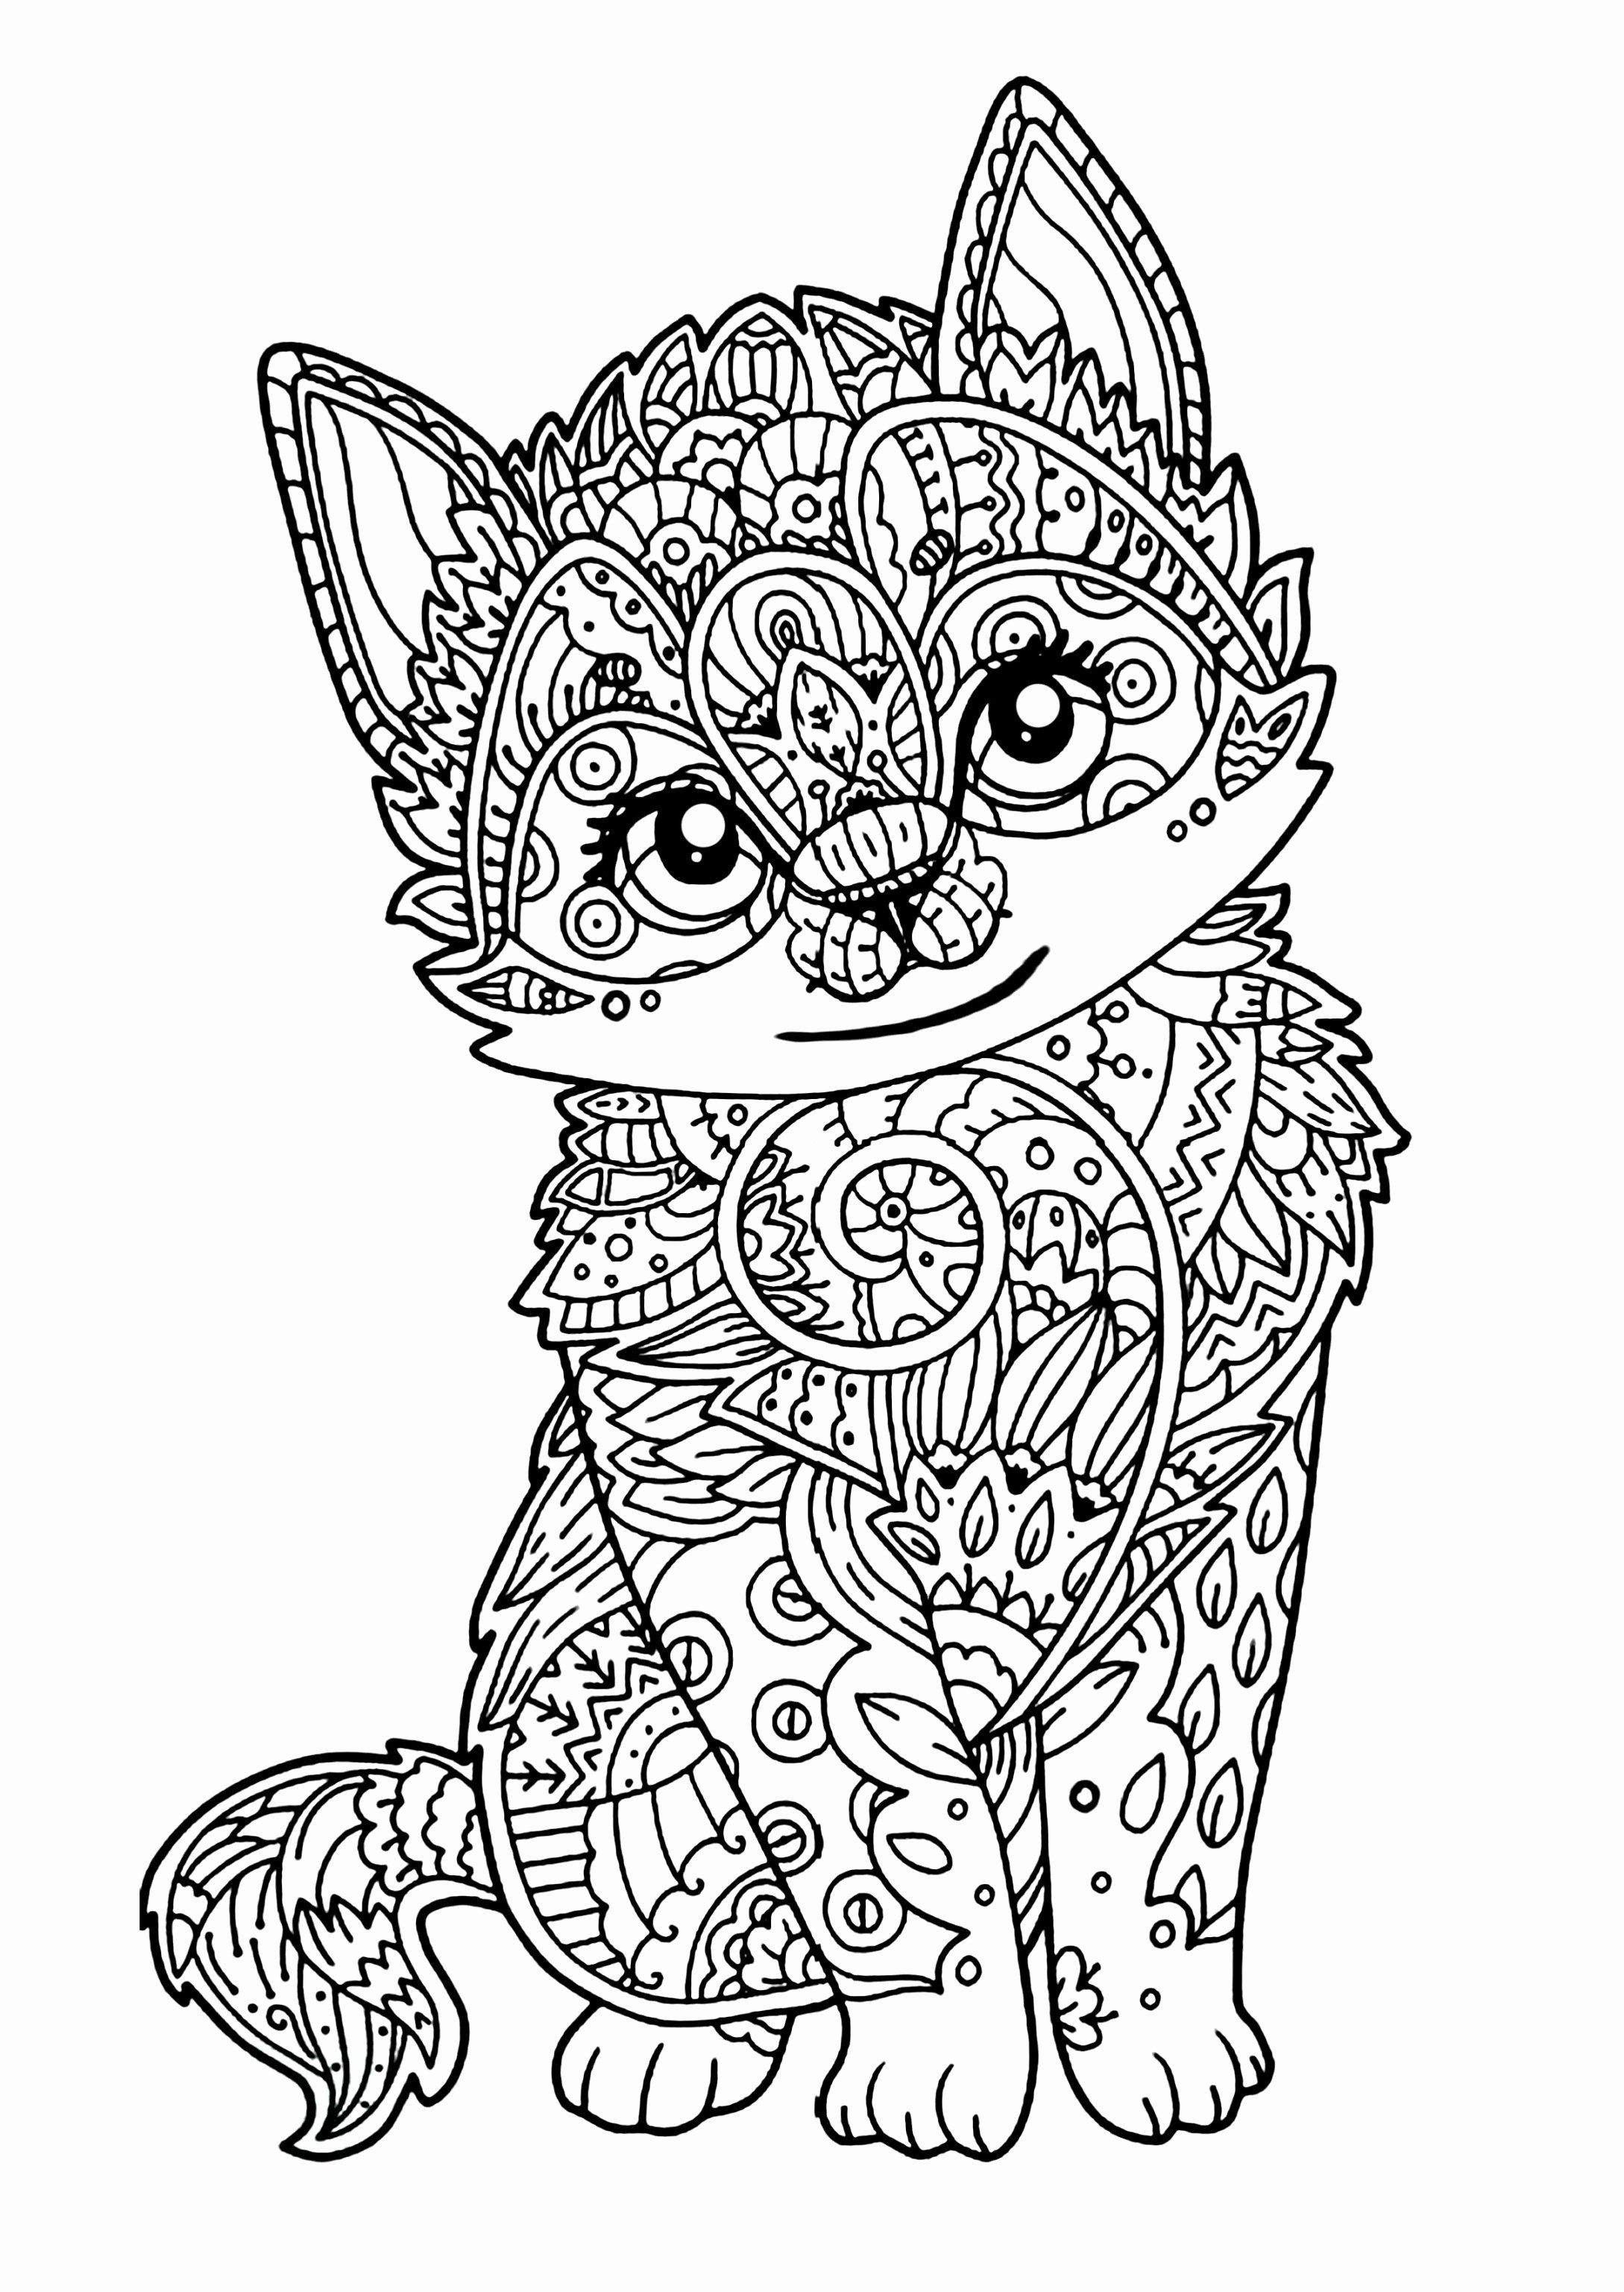 Kawaii Halloween Coloring Pages New 51 Most Wonderful Cute Kawaii Animal Coloring Pages Cat Coloring Book Kittens Coloring Animal Coloring Books